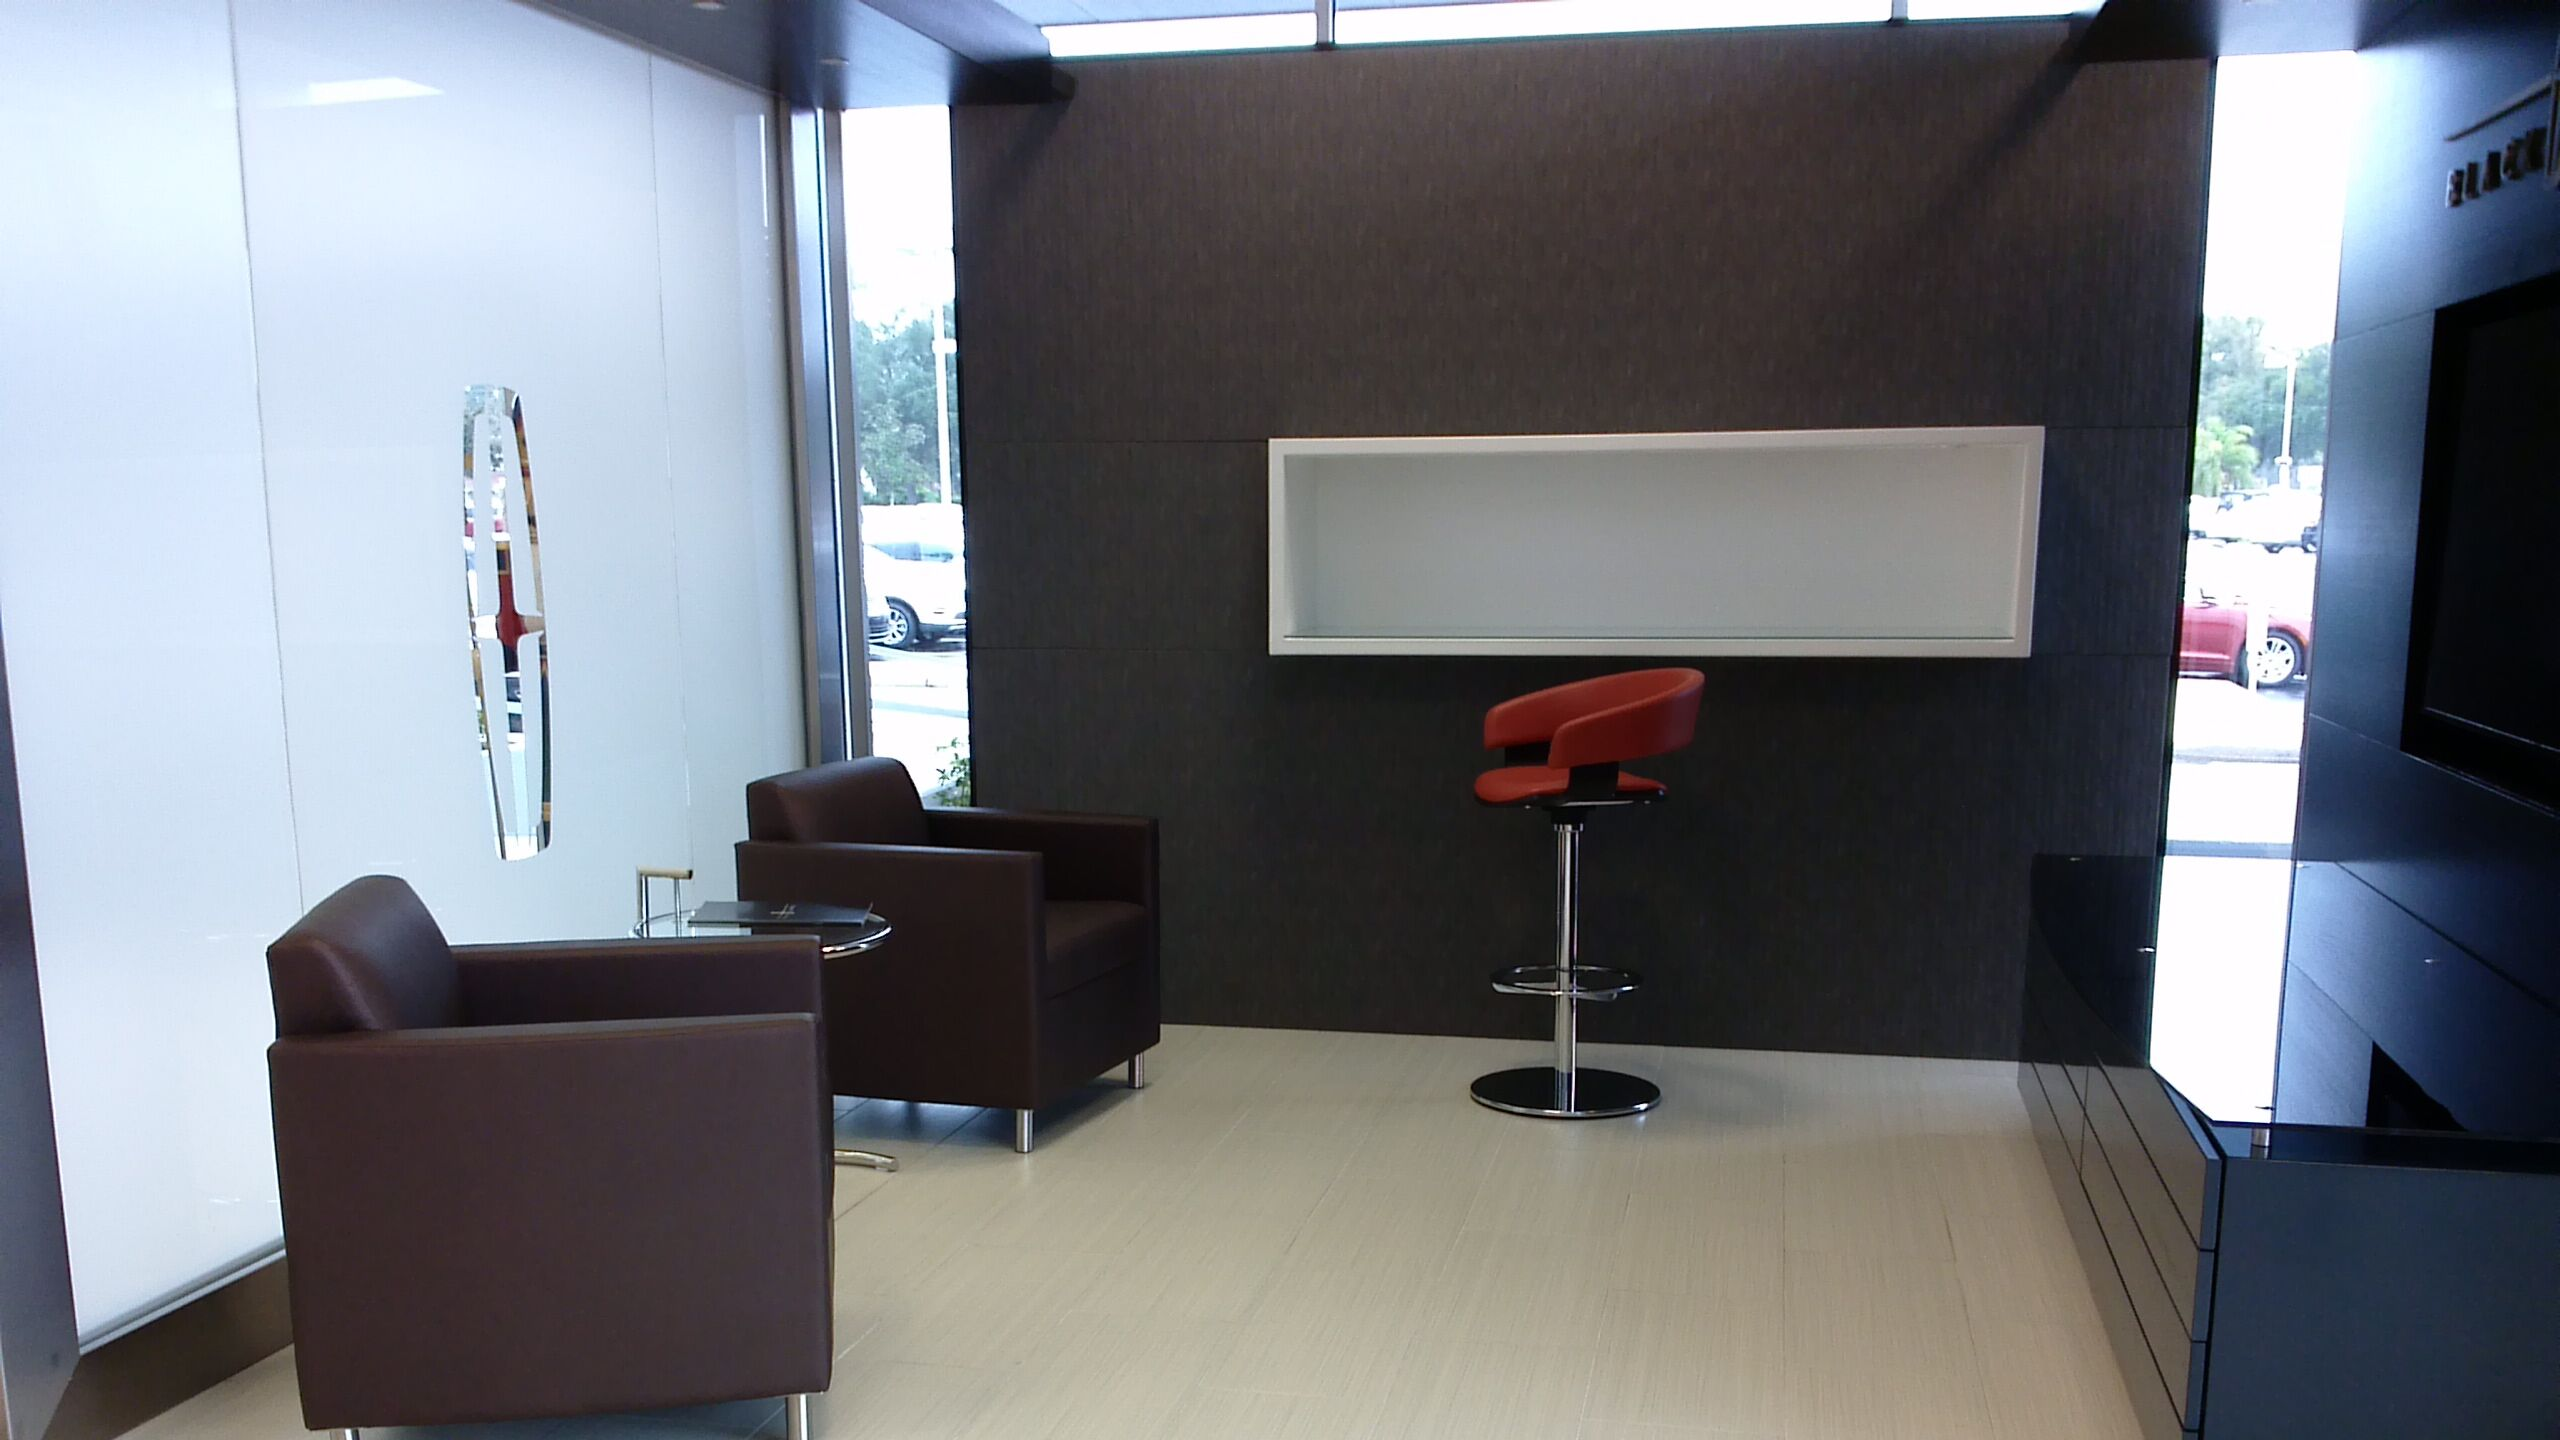 Showroom Picture 2 at Central Florida Lincoln